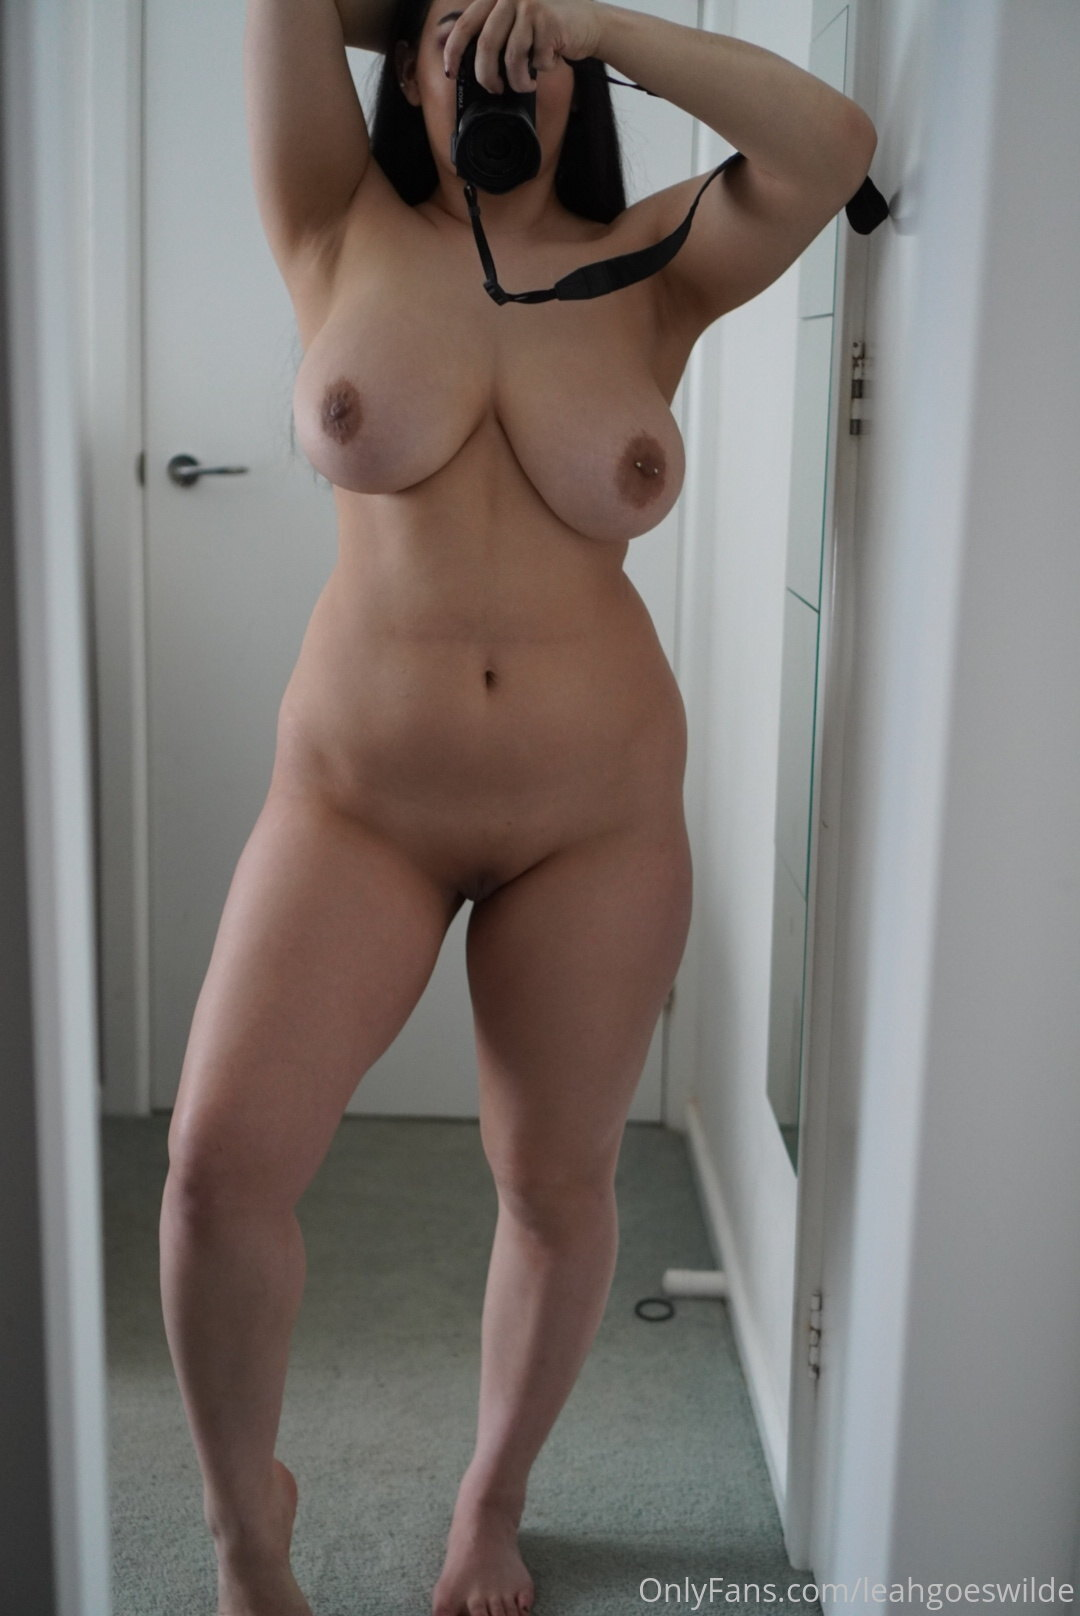 Leahgoeswild Porn OnlyFans Leaked Nudes 57